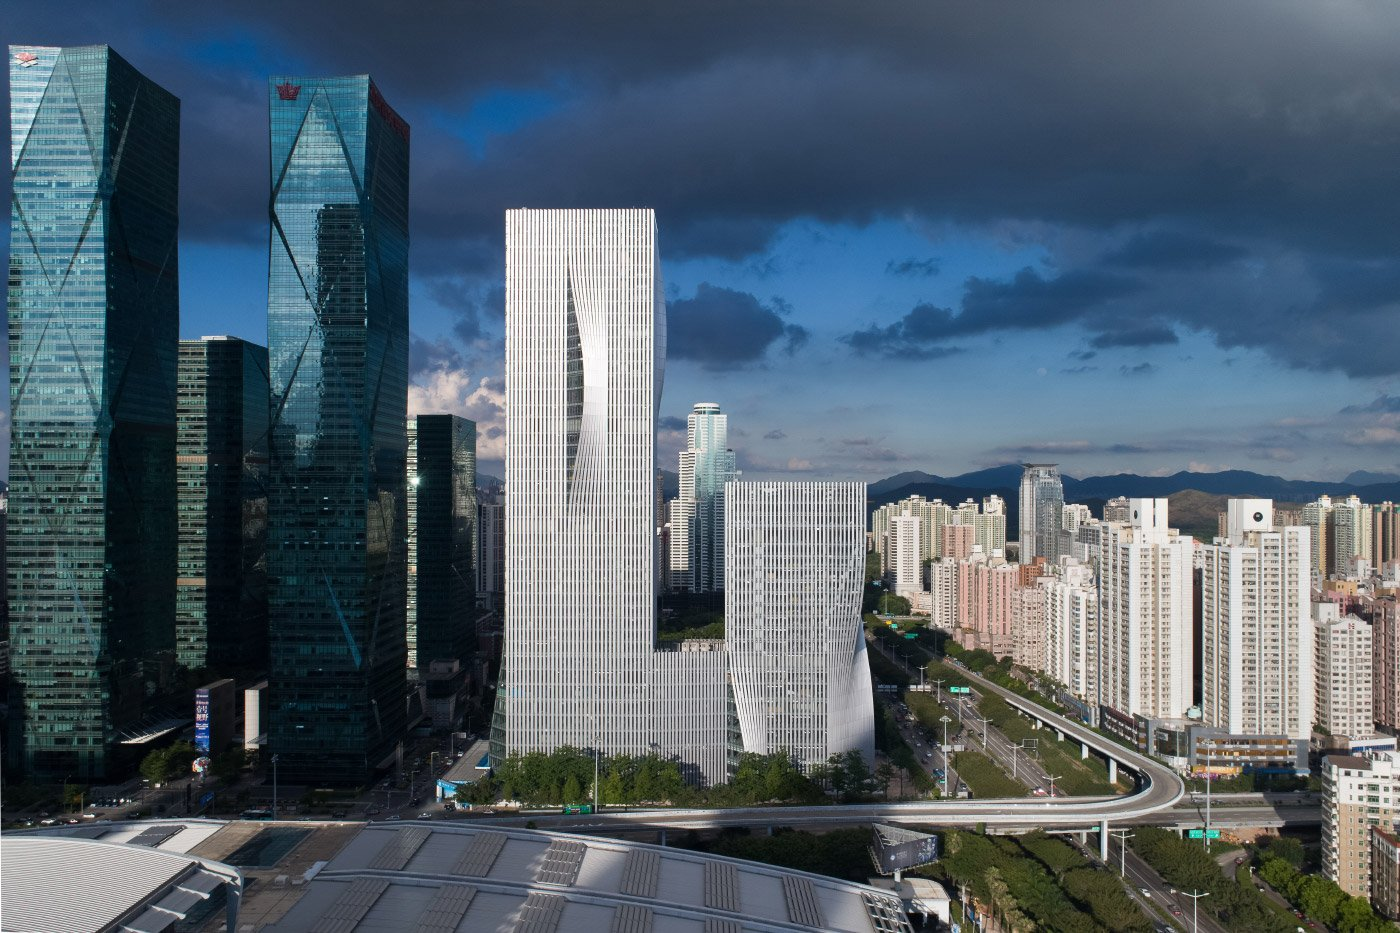 01_BIG_SEM_Shenzhen-Energy-Mansion_Image-by-Chao-Zhang 2